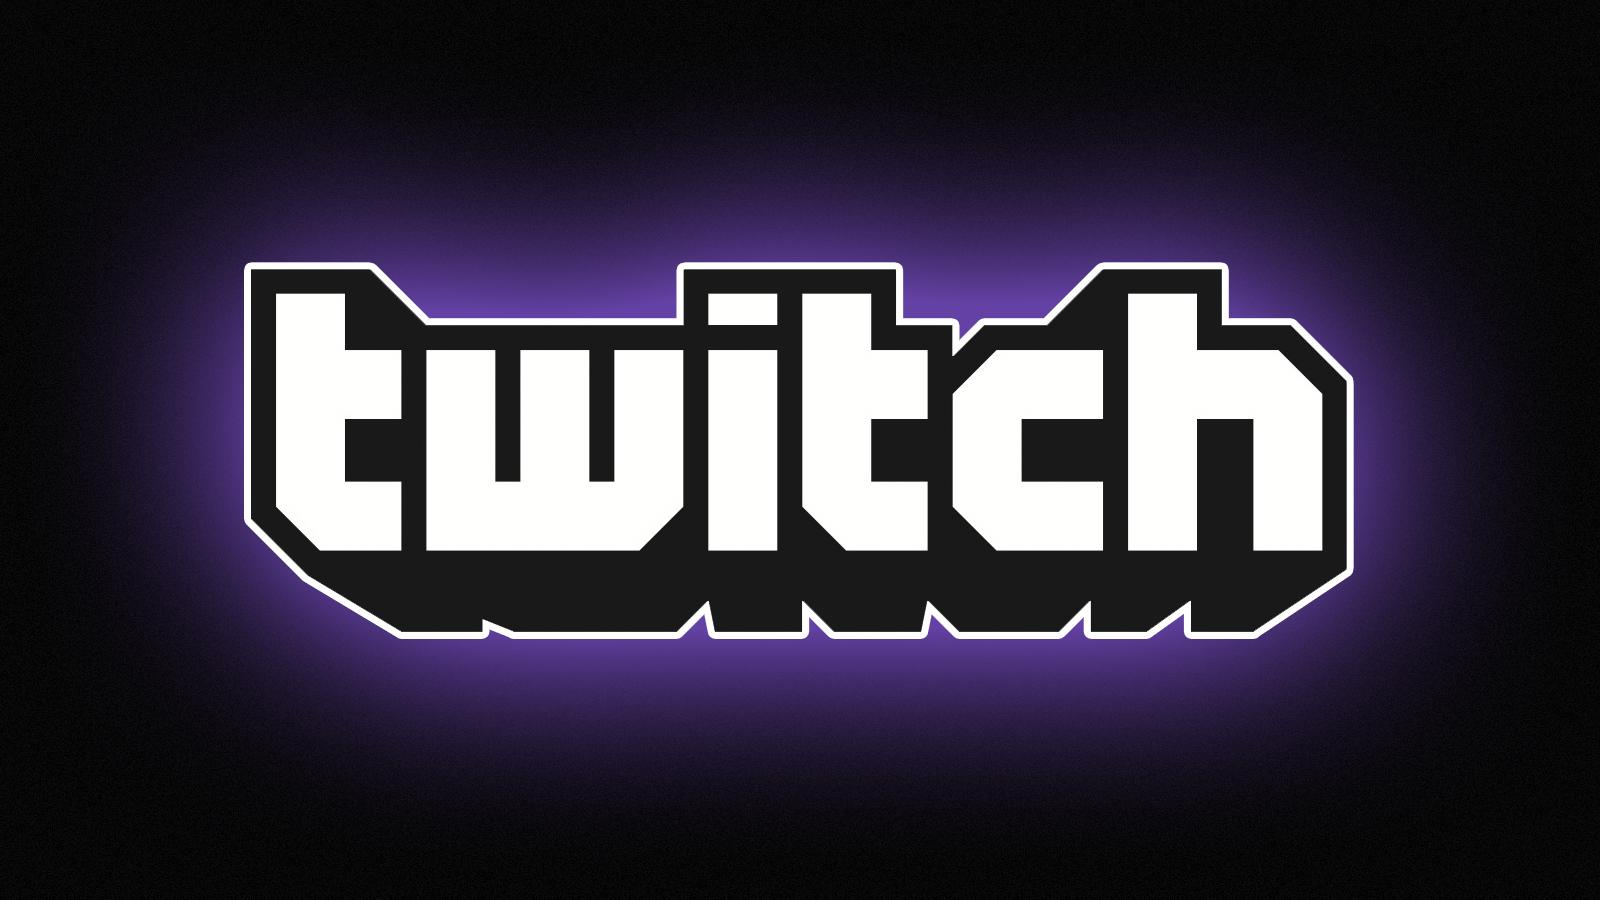 Como hacer streaming en Twitch y ganar audiencia